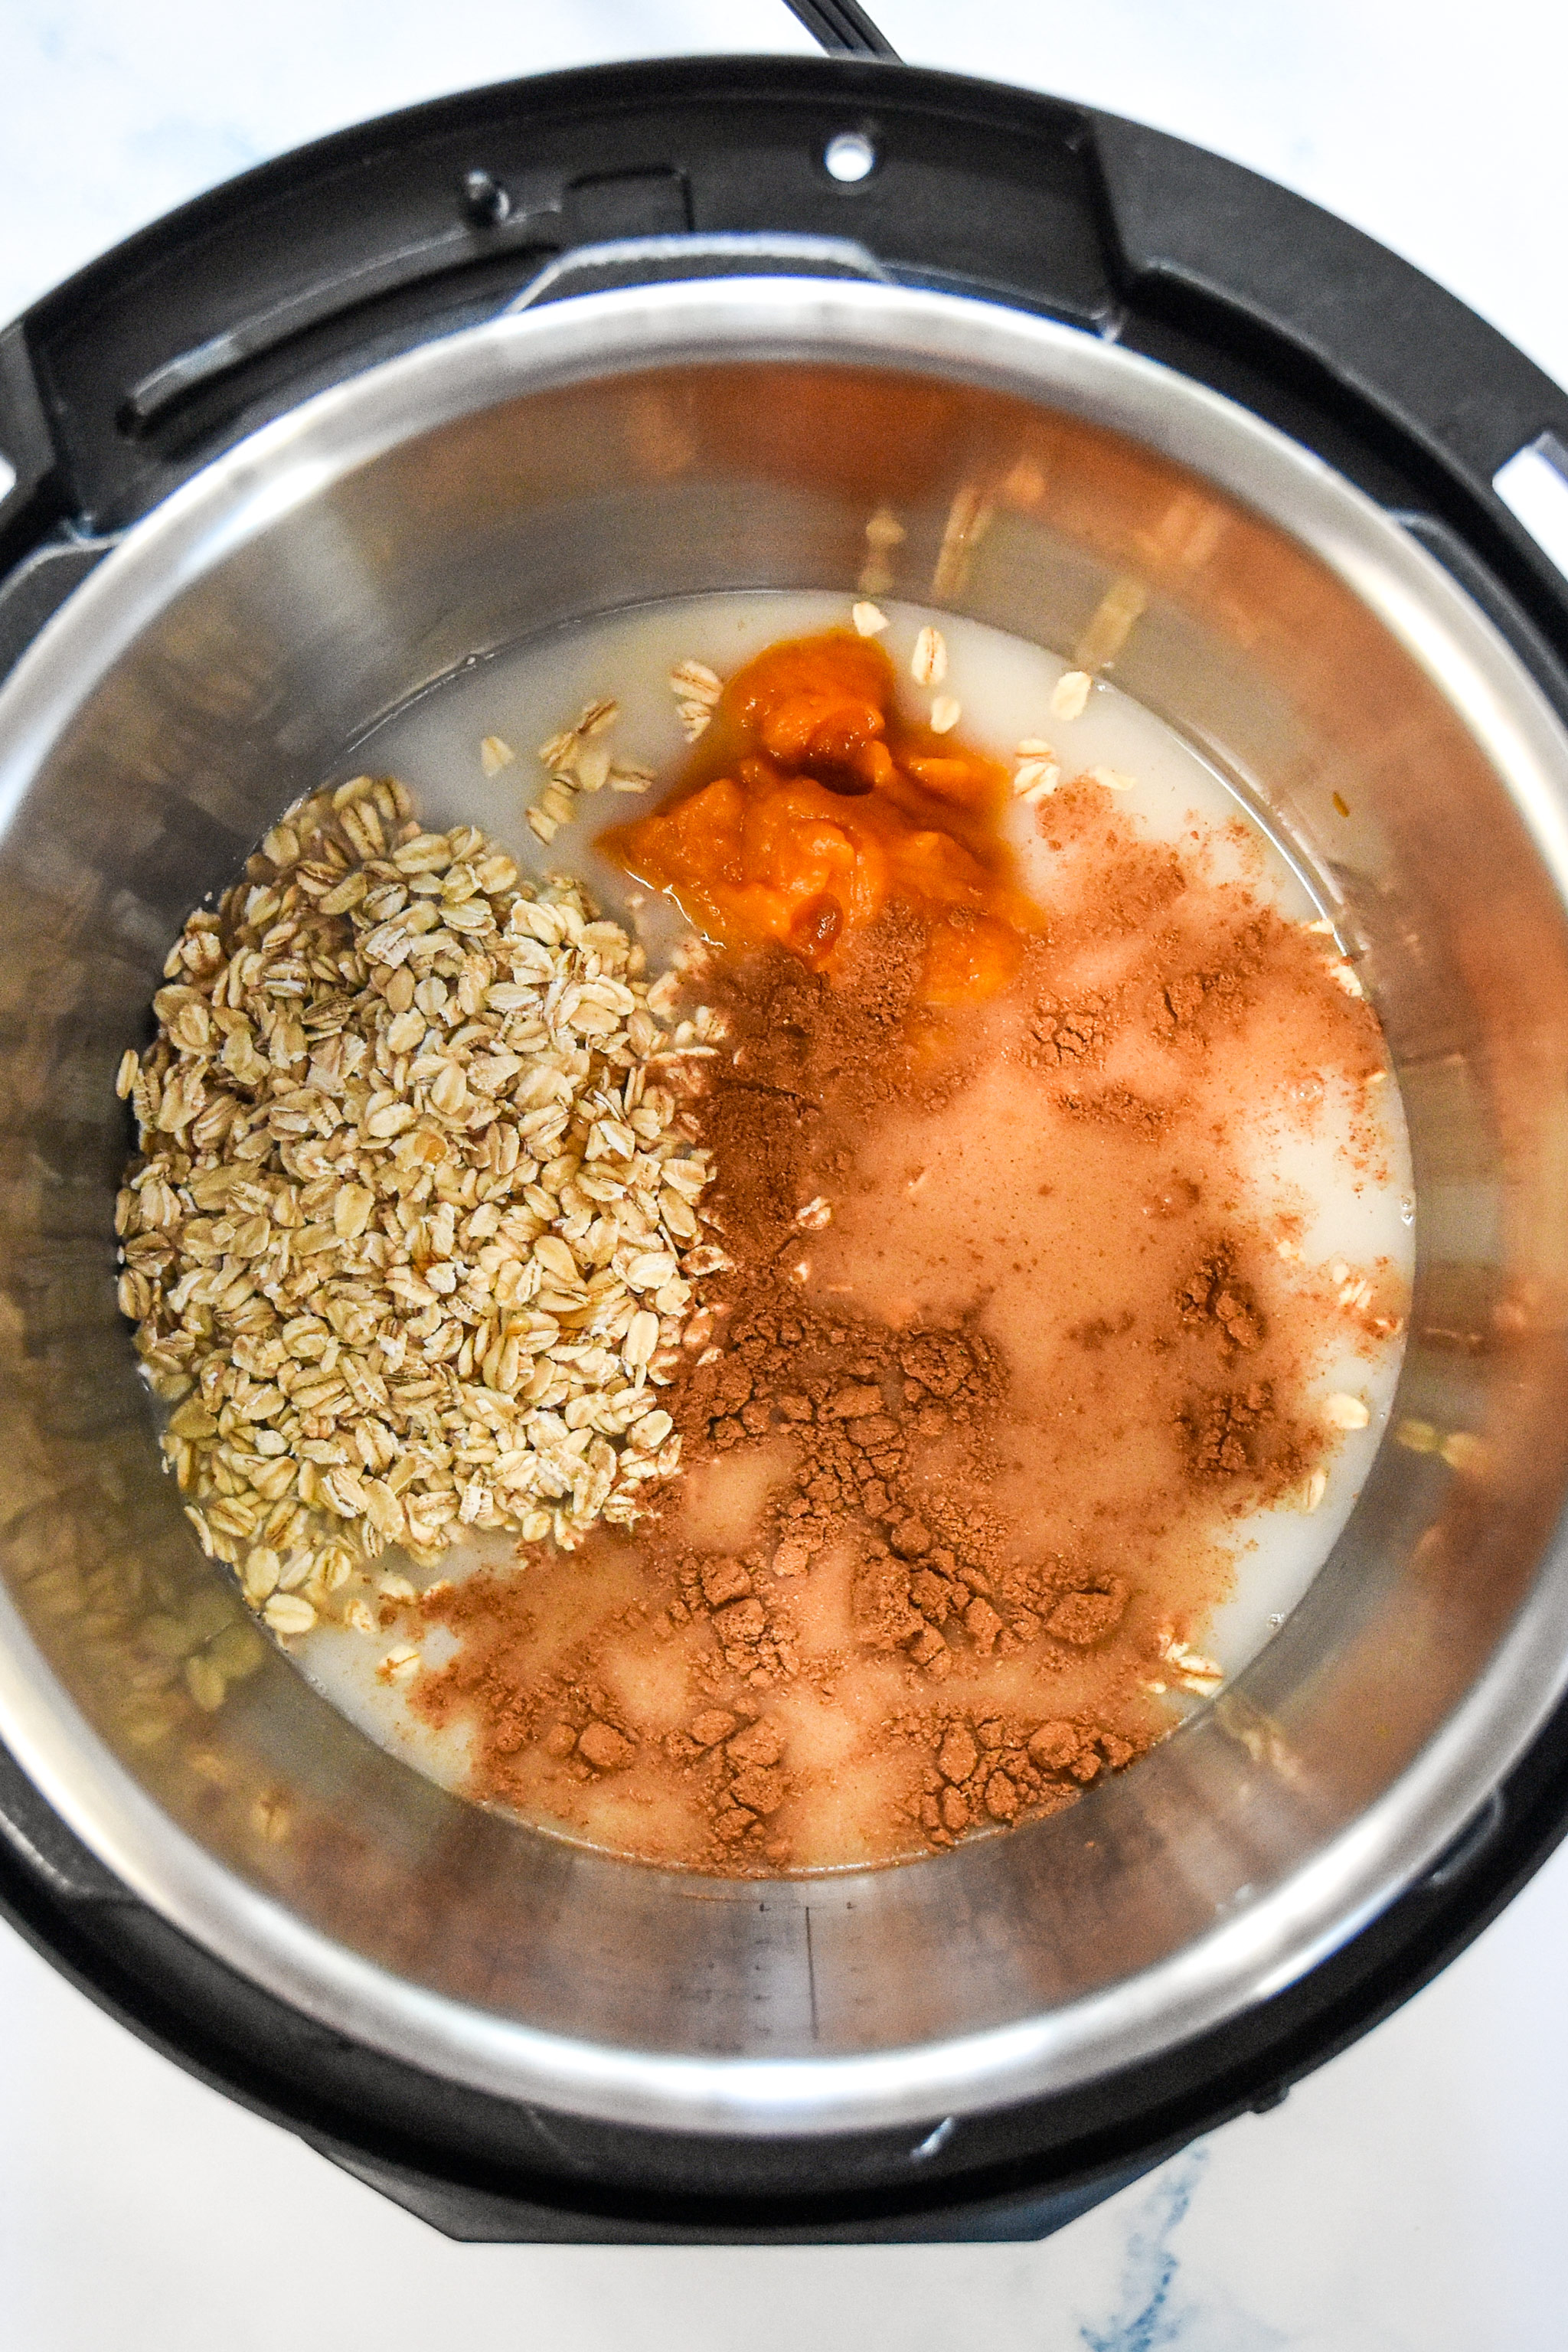 everything in the instant pot for the pumpkin spice oatmeal.